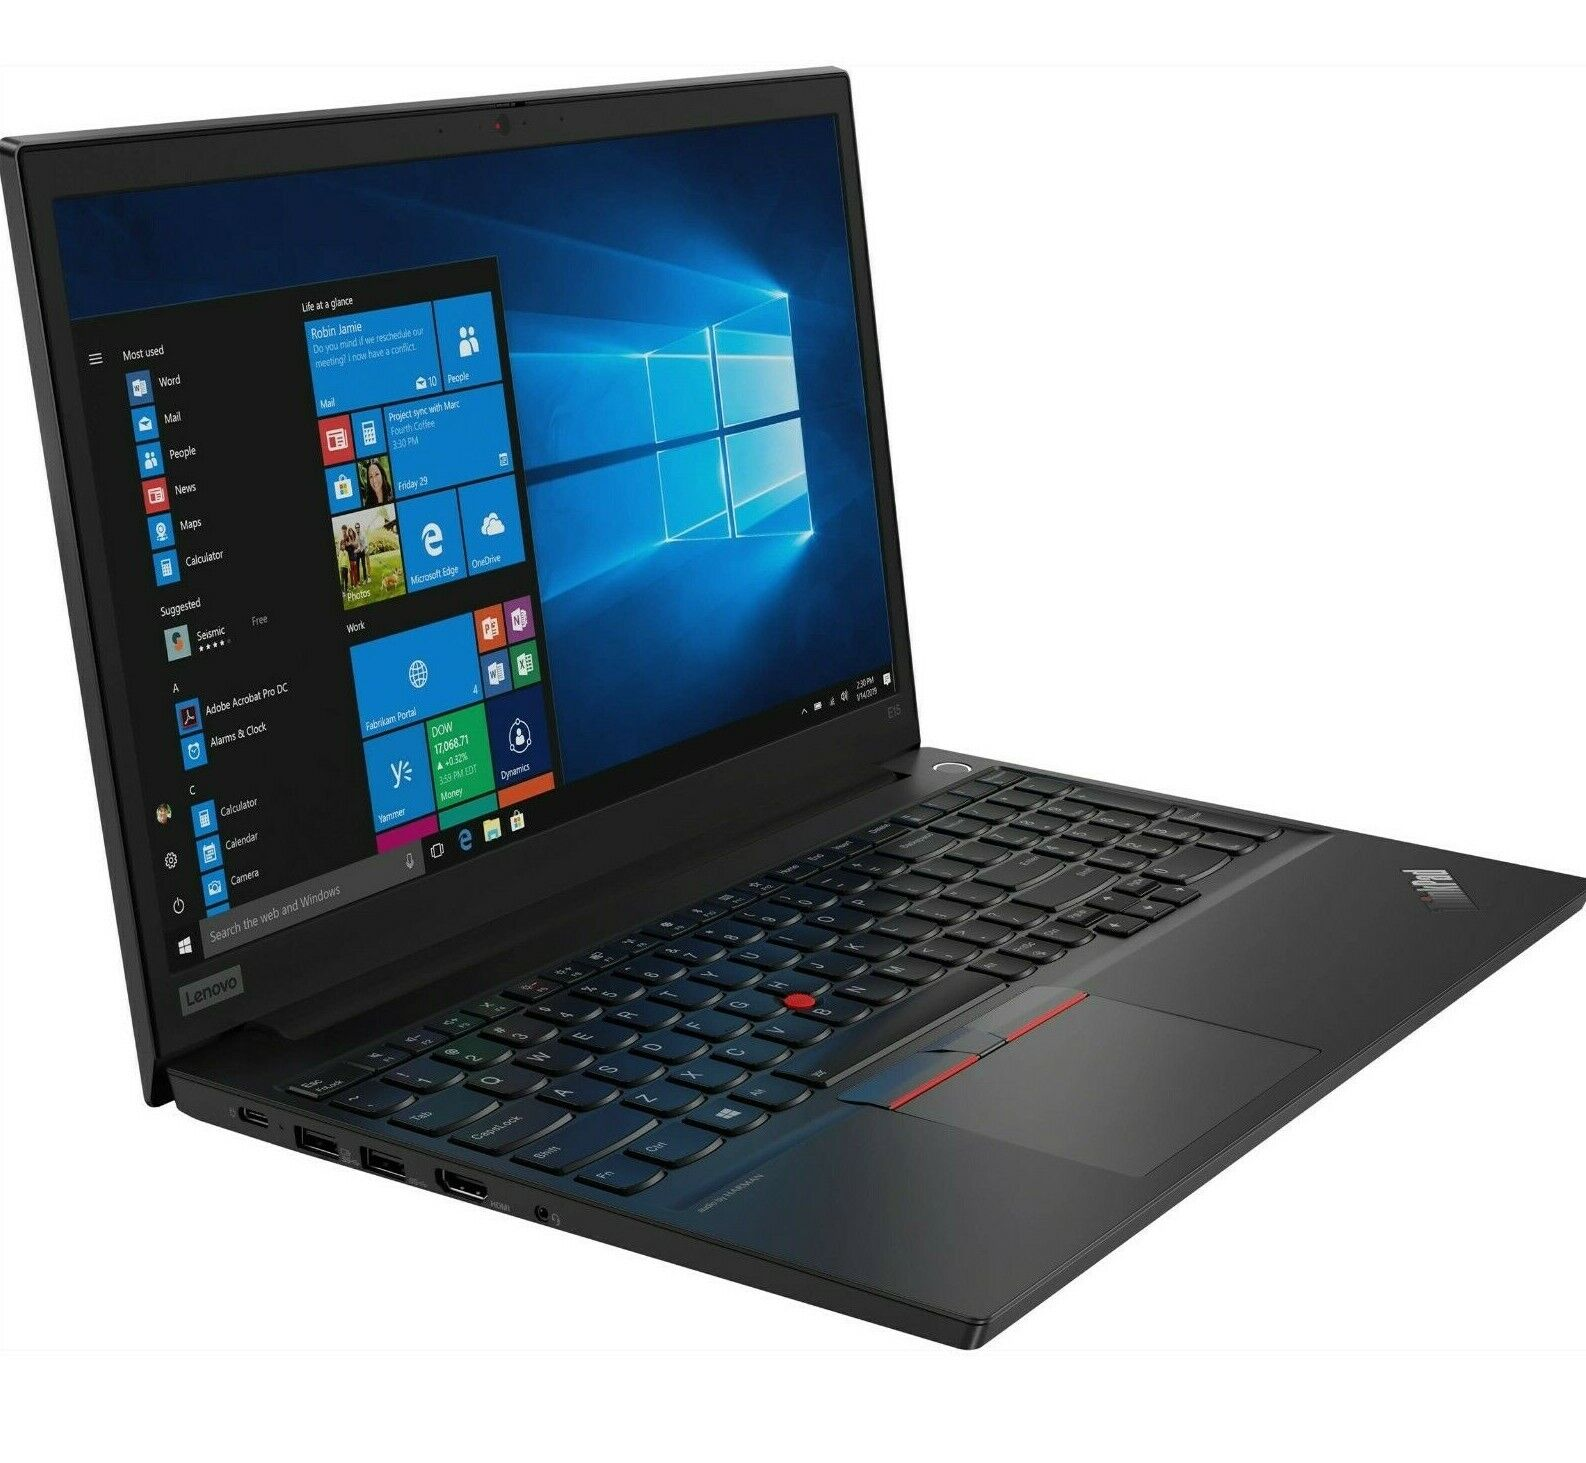 "Laptop Windows - Lenovo ThinkPad E15 Laptop 15.6"" FHD Core i5-10210U 8GB 256GB SSD Windows 10 Pro"